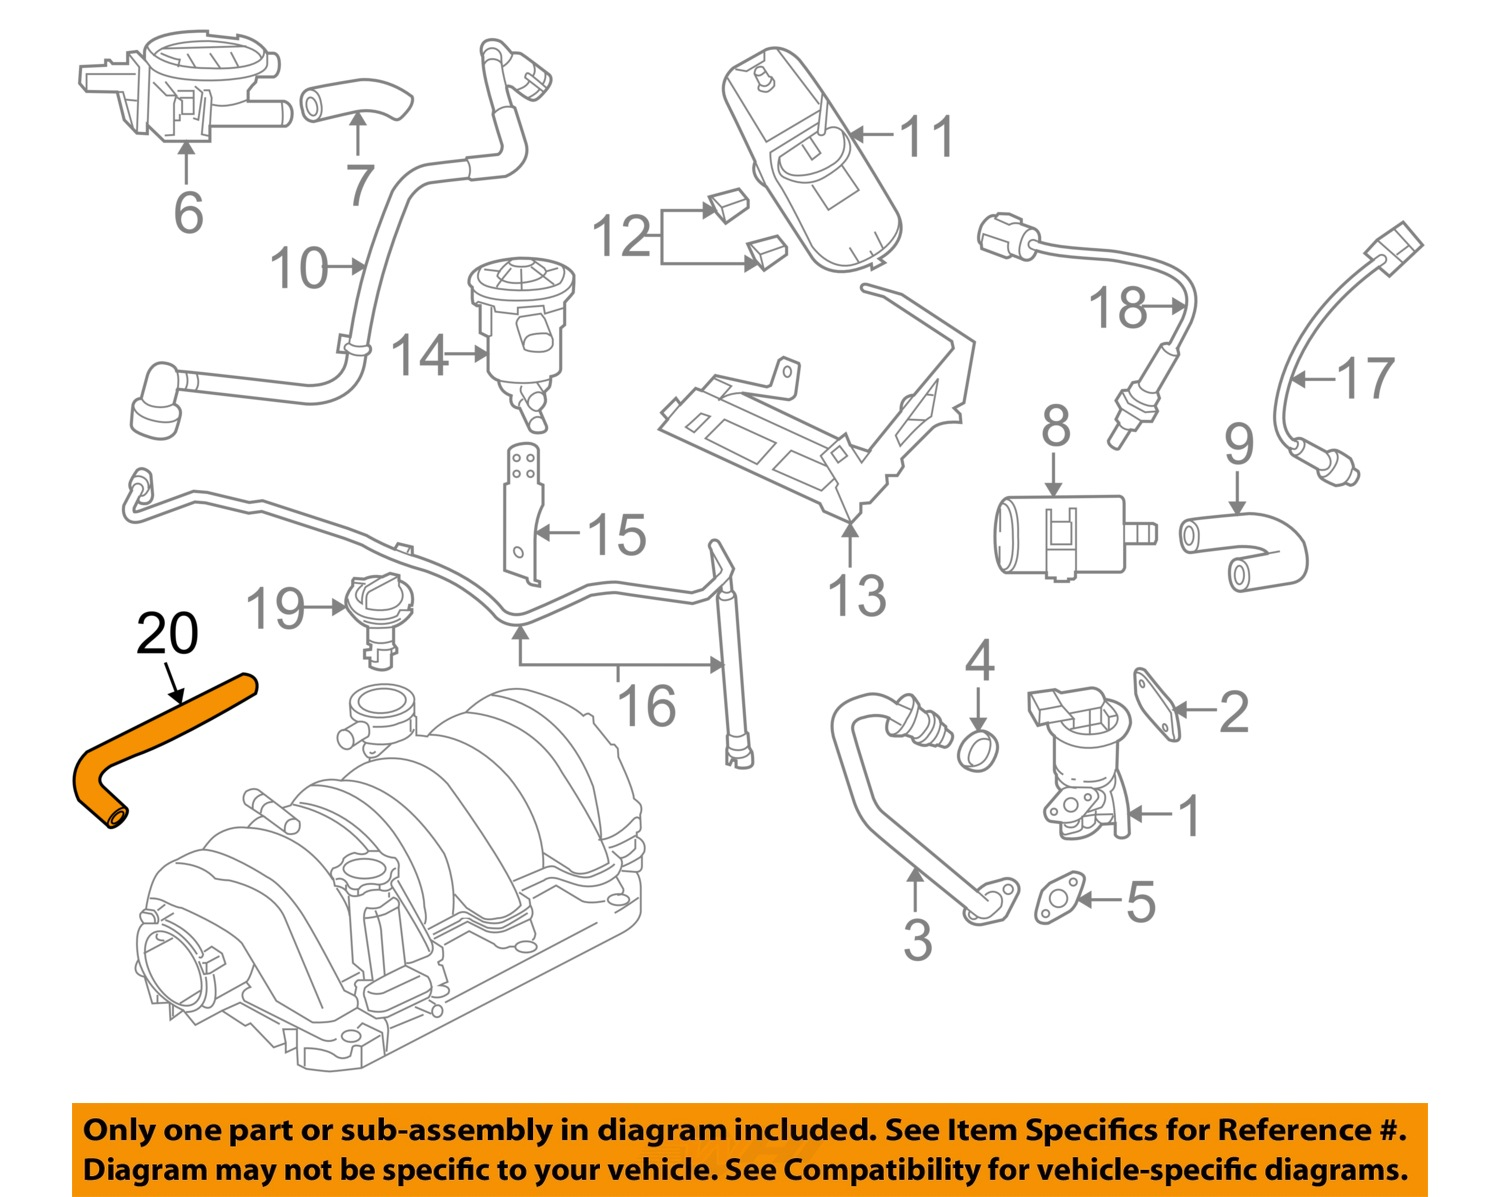 8fodl Flashing Red Light Dash Near Temperature Gauge further 2007 Dodge Charger Sunroof Parts Diagram furthermore Bmw E46 Engine Wiring Harness Diagram additionally Dodge Ram 1500 Hemi 2007 Pcv Valve Location as well 2003 Dodge 5 7l Hemi Vacuum System Diagram. on 2006 dodge charger engine wiring diagram